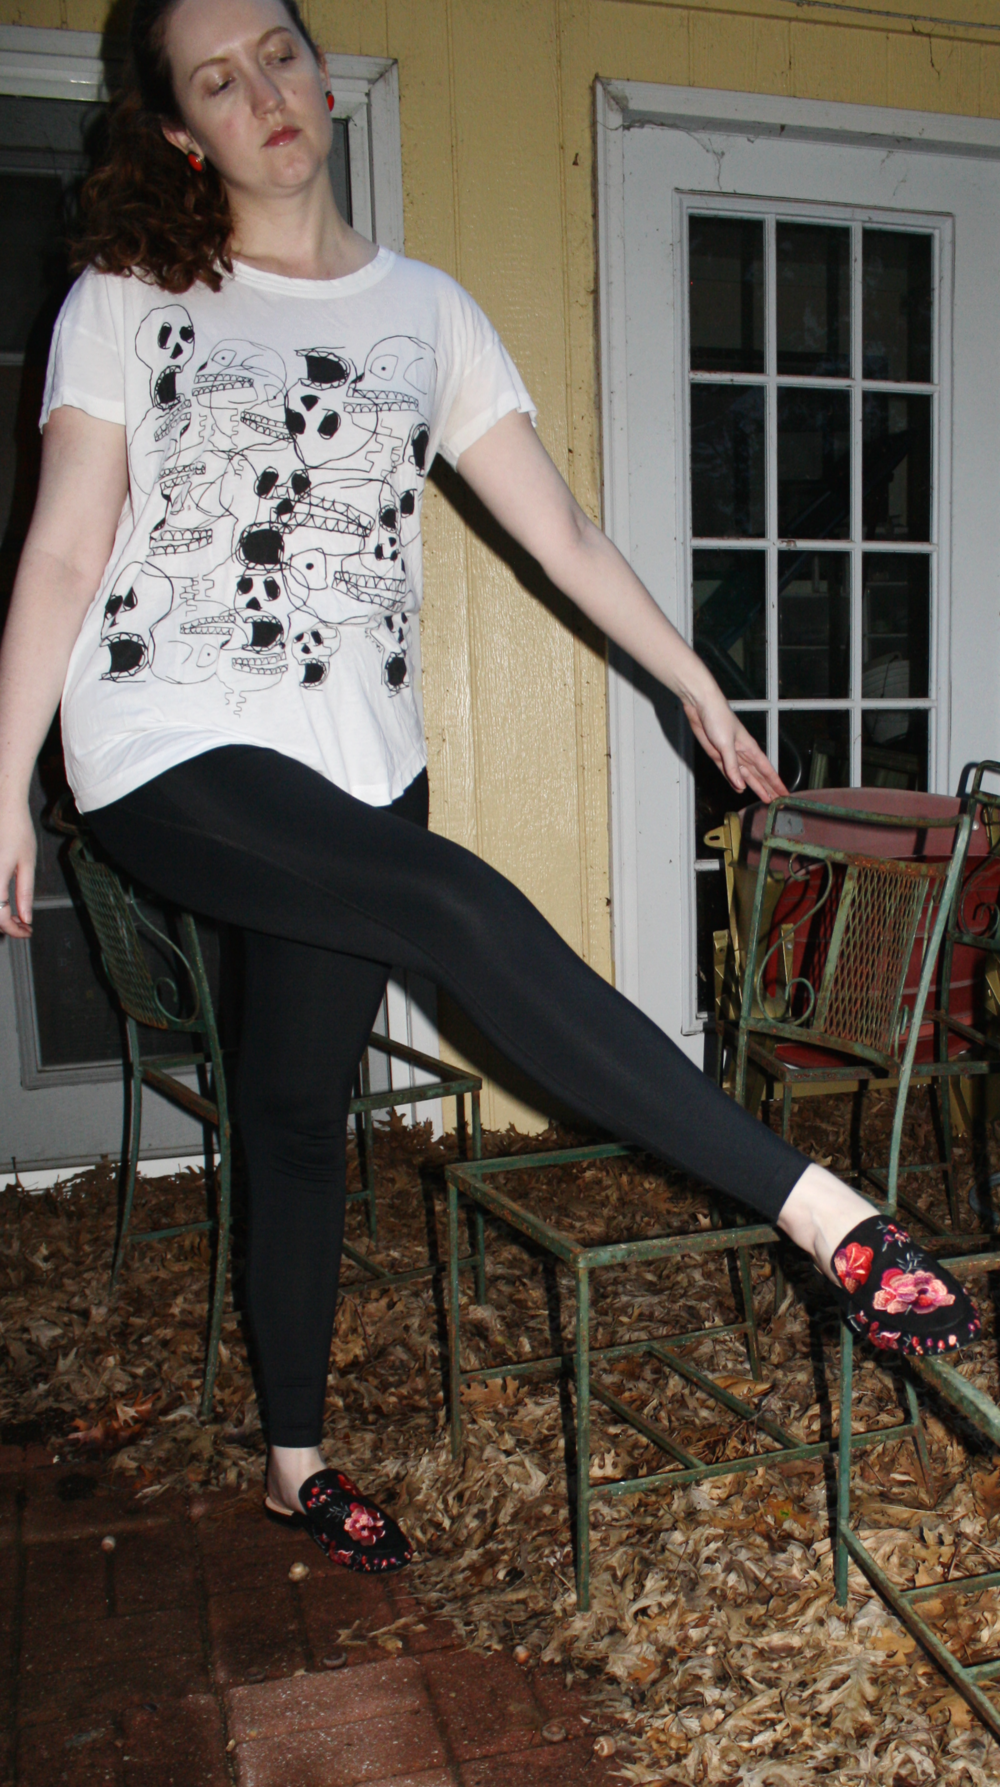 Marc by Marc Jacobs shirt + Girlfriend Collective black leggings + INC X Anna Sui mules